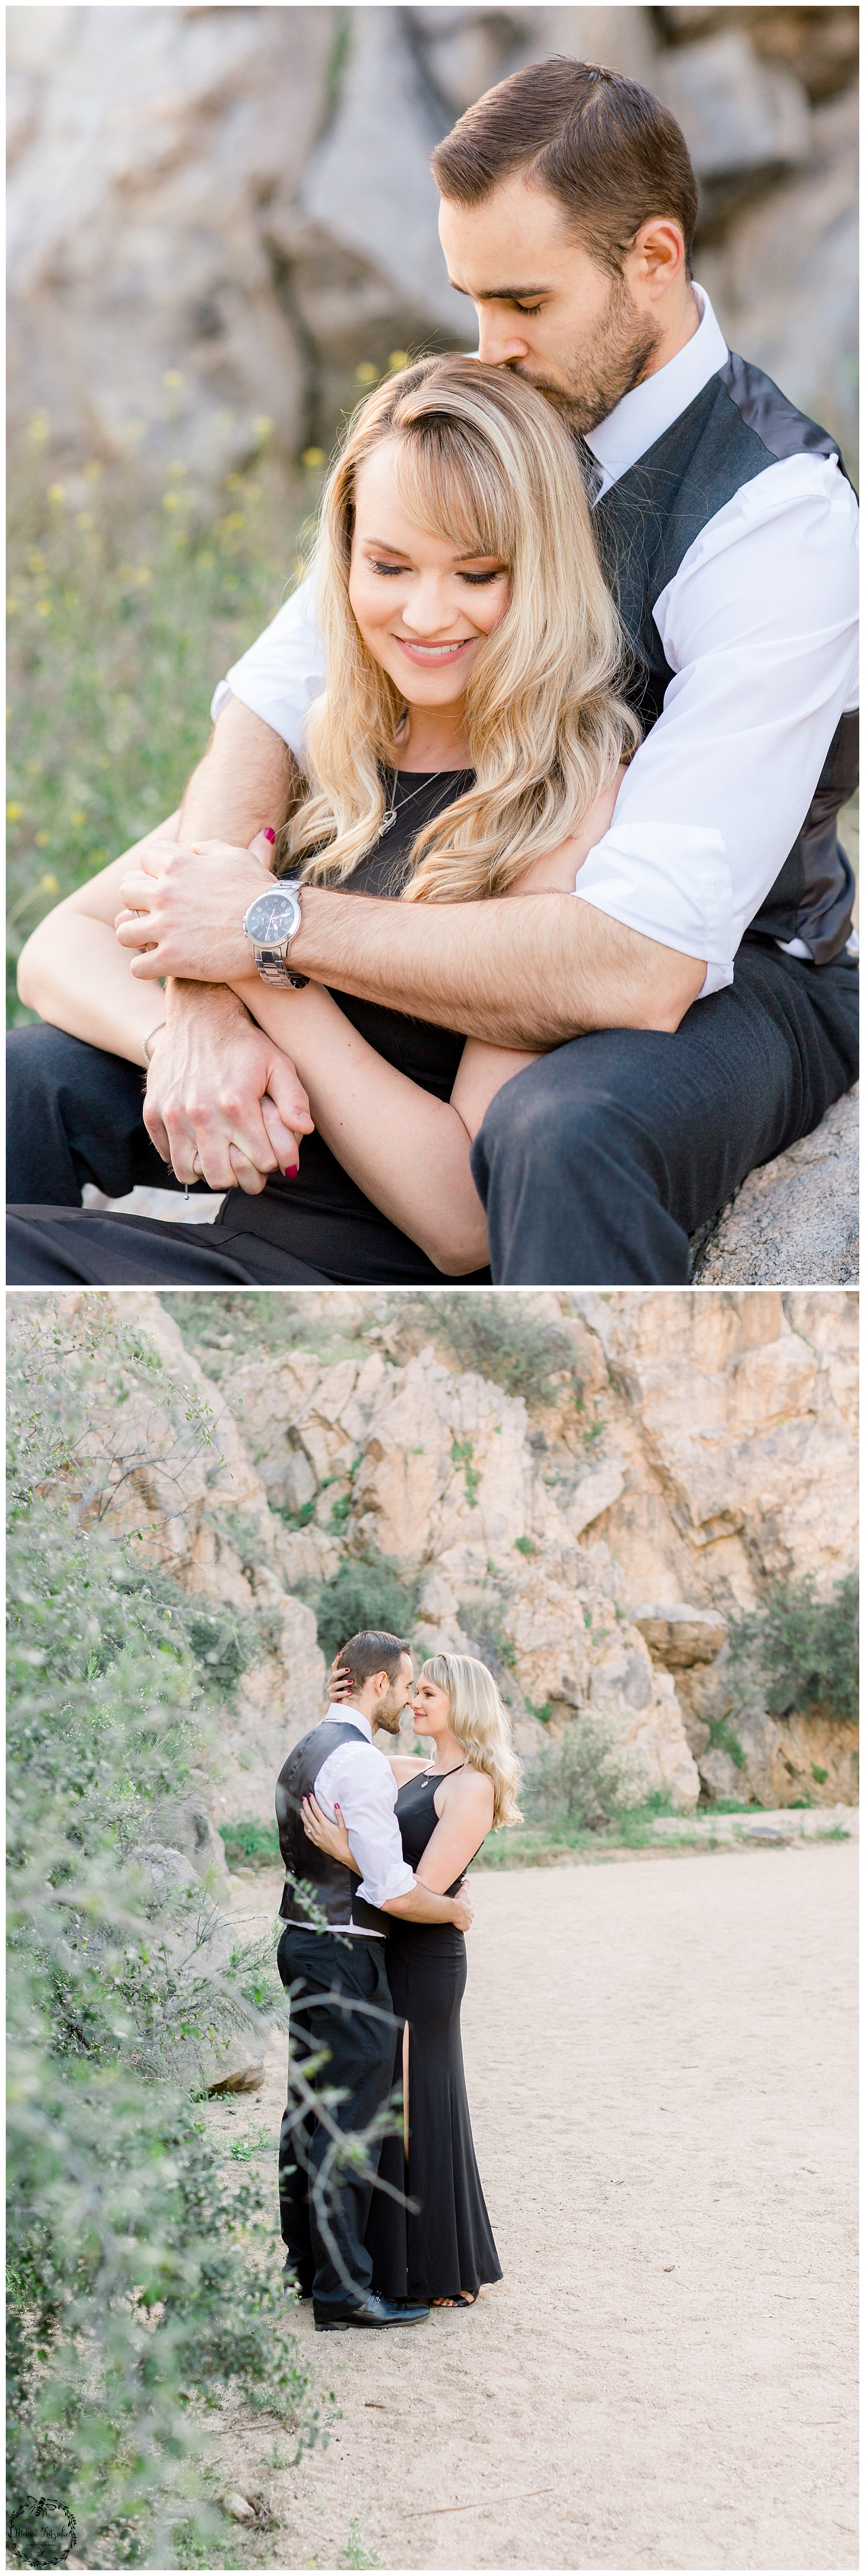 Tucson Desert Engagement Session- Kelly and Ben_0014.jpg